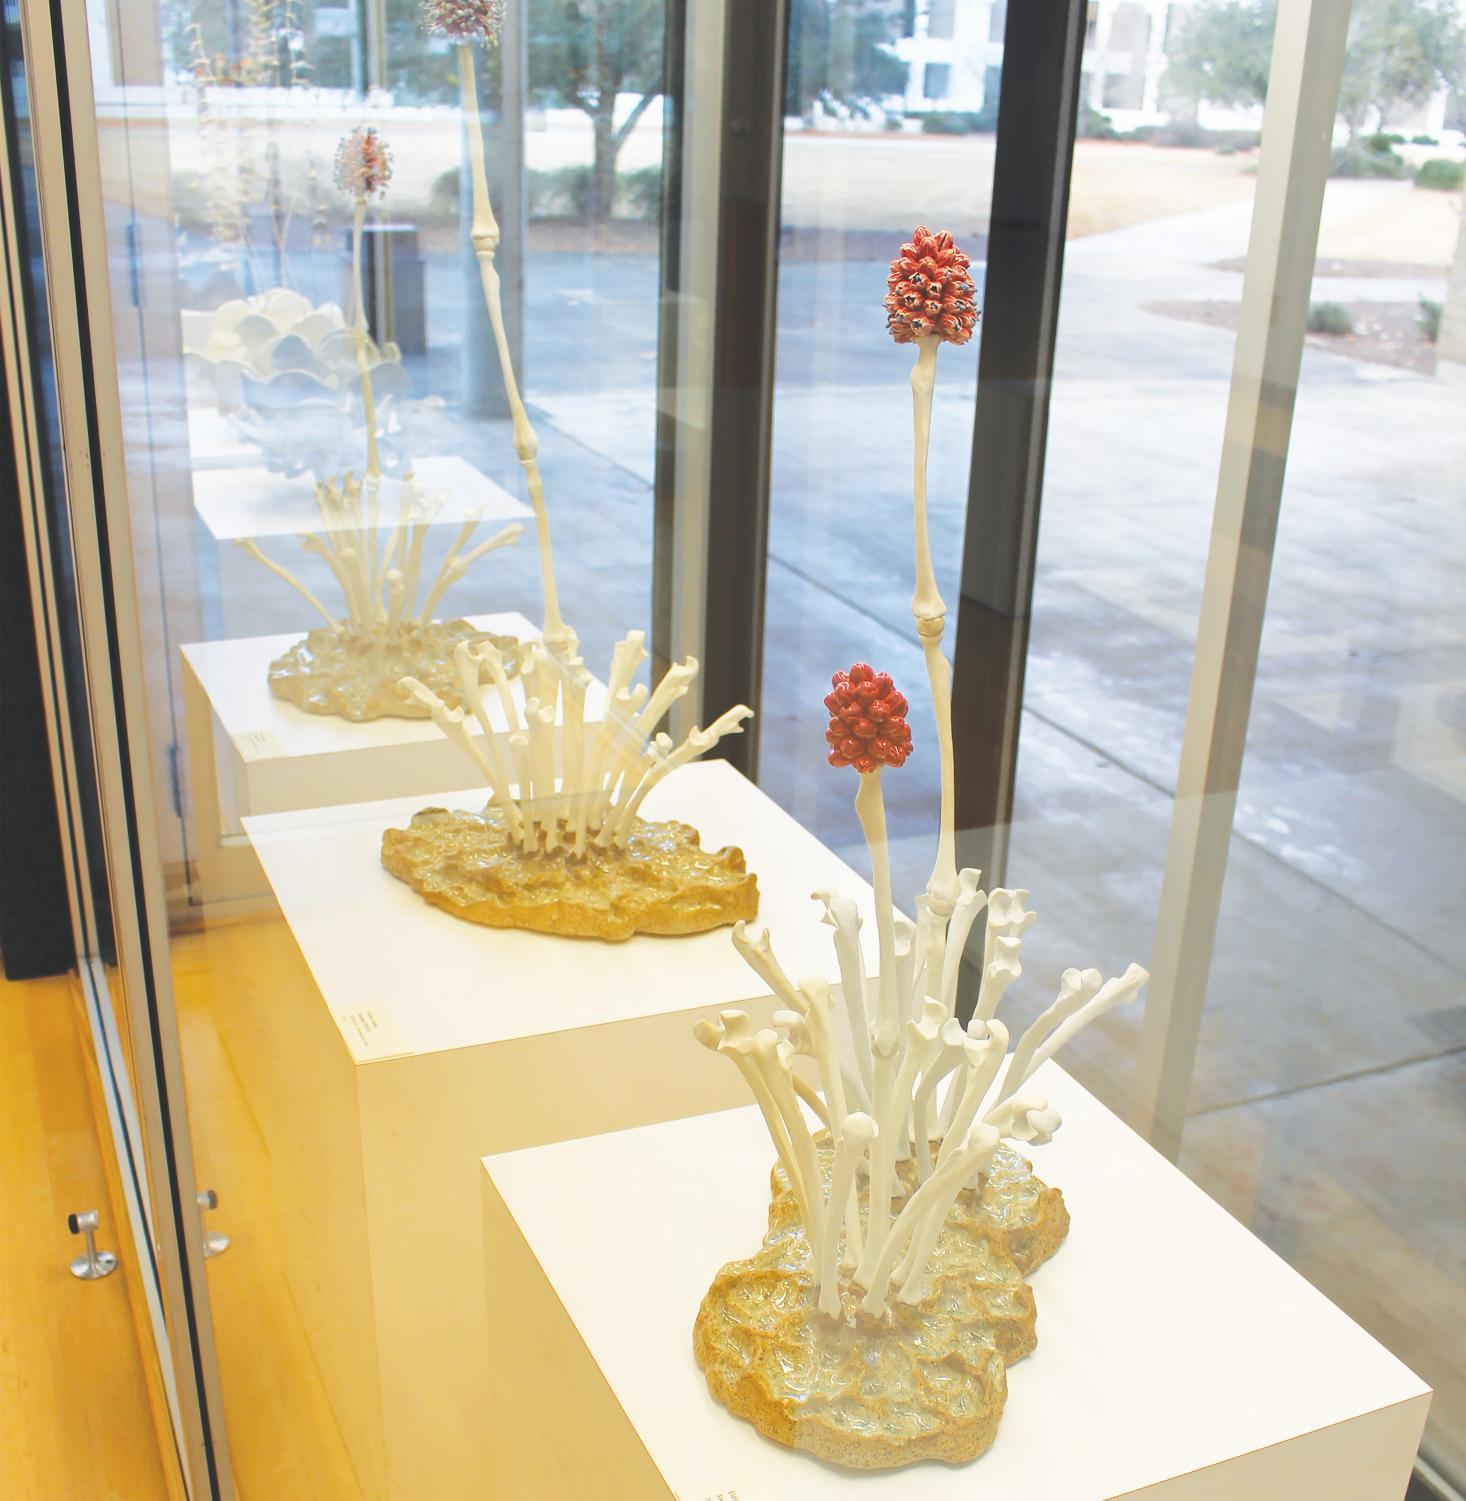 Elaine Quave says her ceramic sculptures are inspired by her desire to understand what it means to be human.